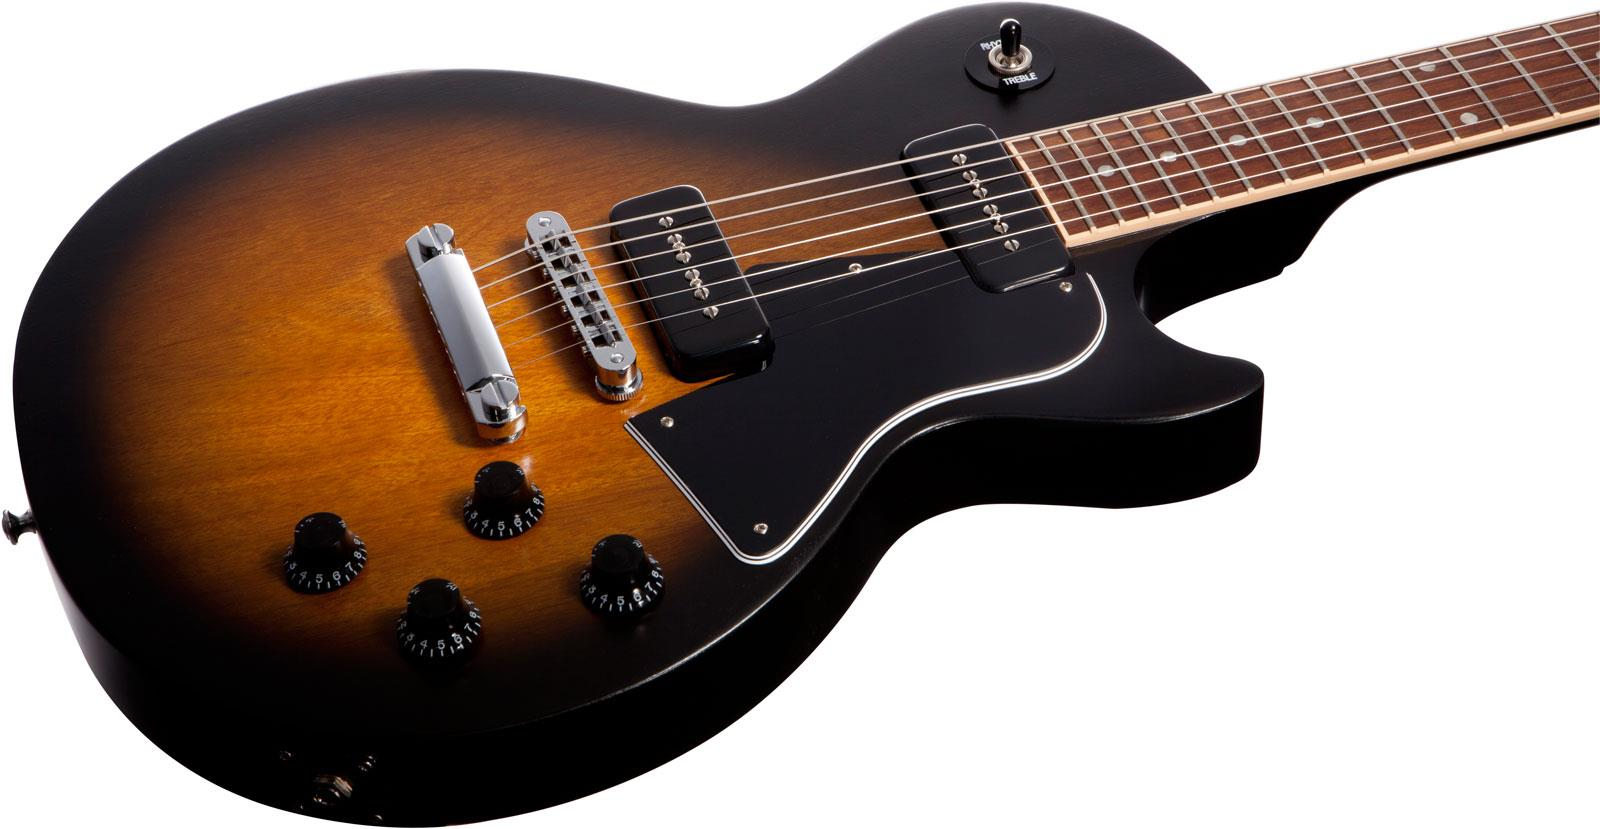 gibson les paul junior special p90 satin vintage sunburst. Black Bedroom Furniture Sets. Home Design Ideas